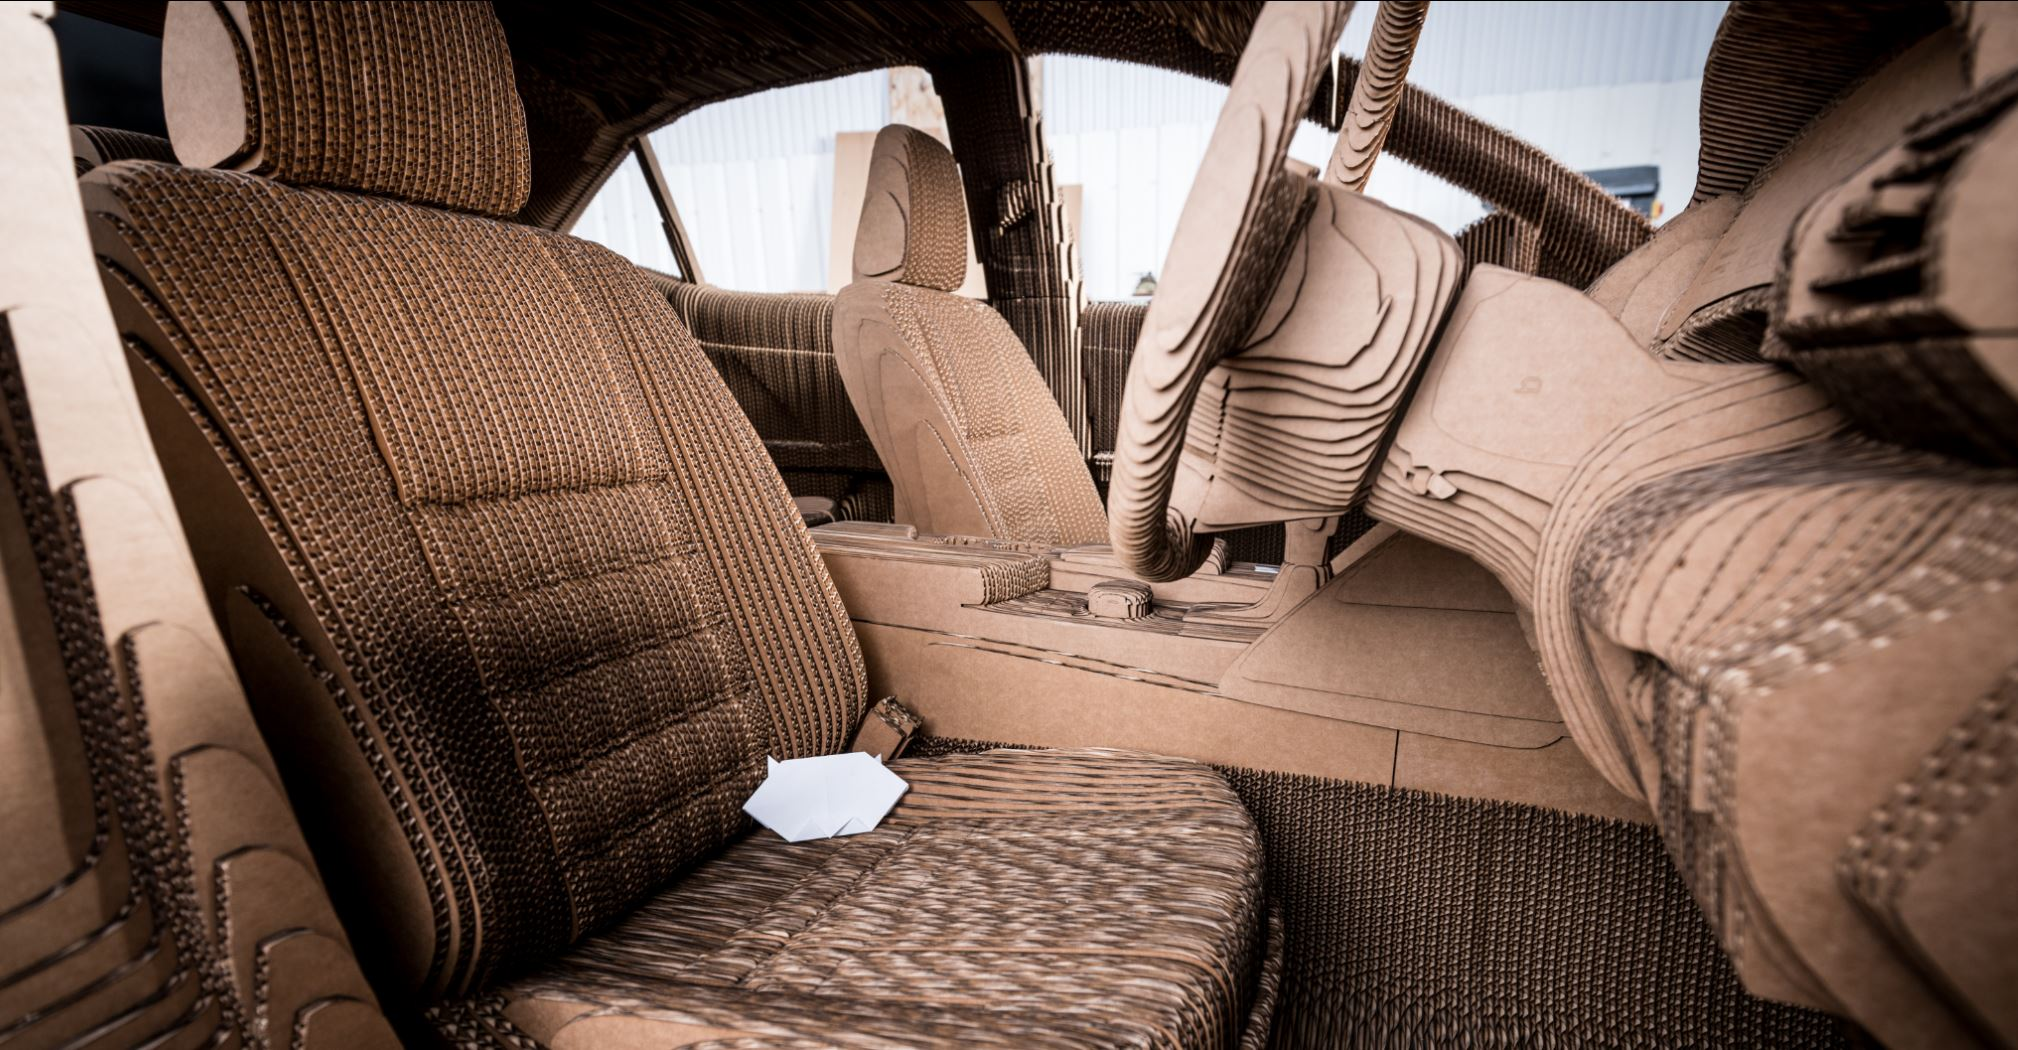 Lexus Built An Awesome Full-size Electric Car Out Of Cardboard